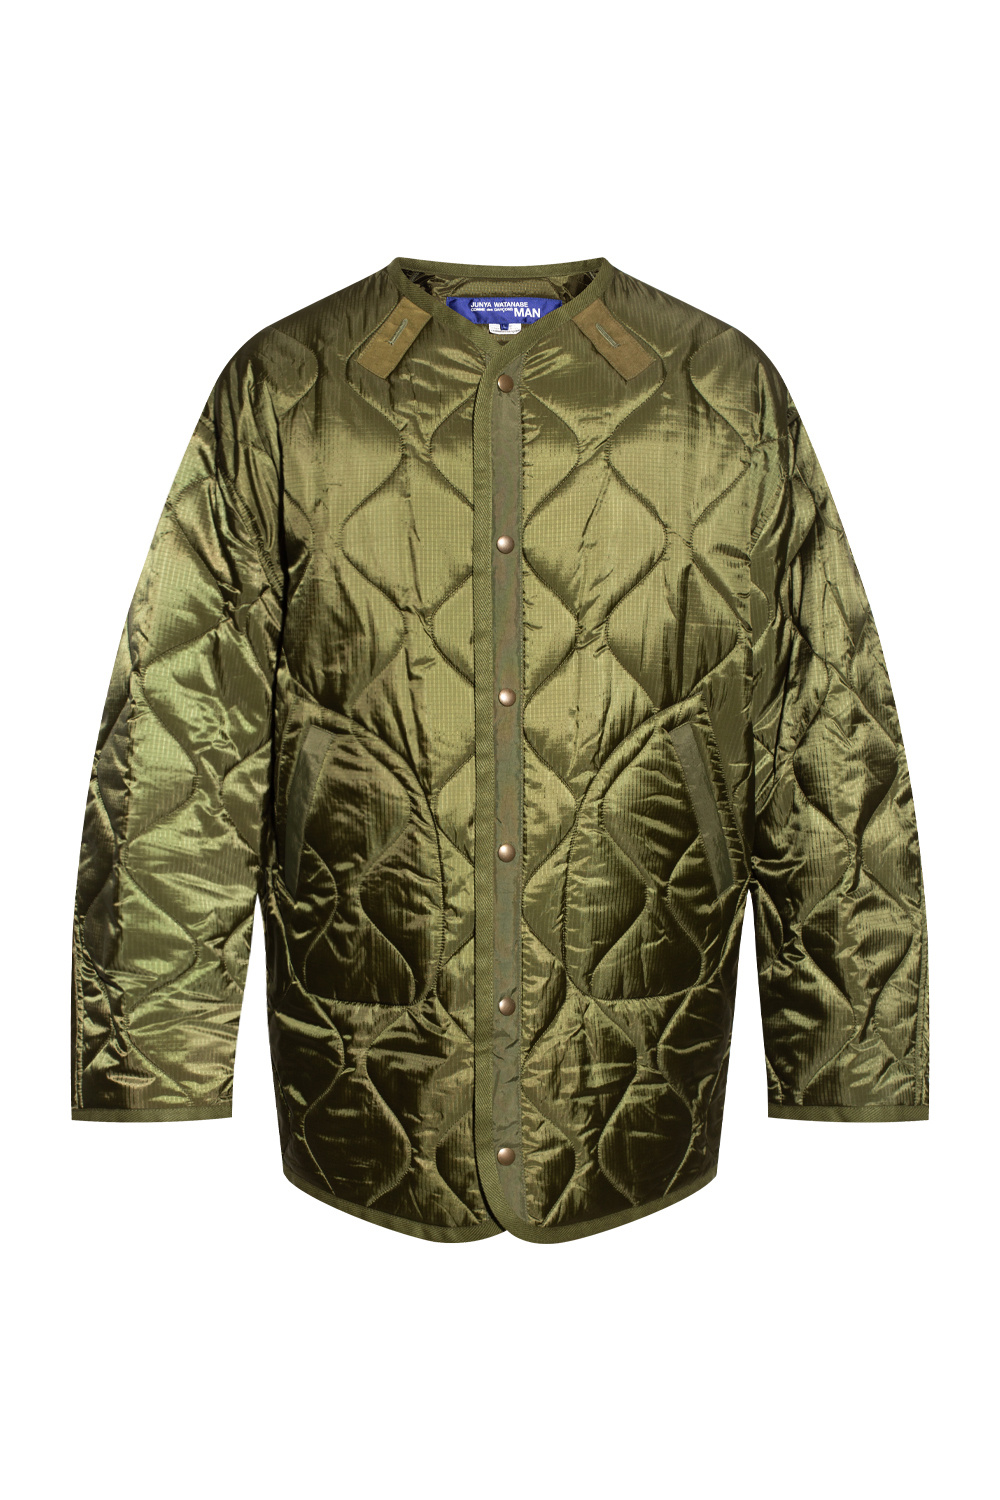 Junya Watanabe Comme des Garcons Printed quilted jacket